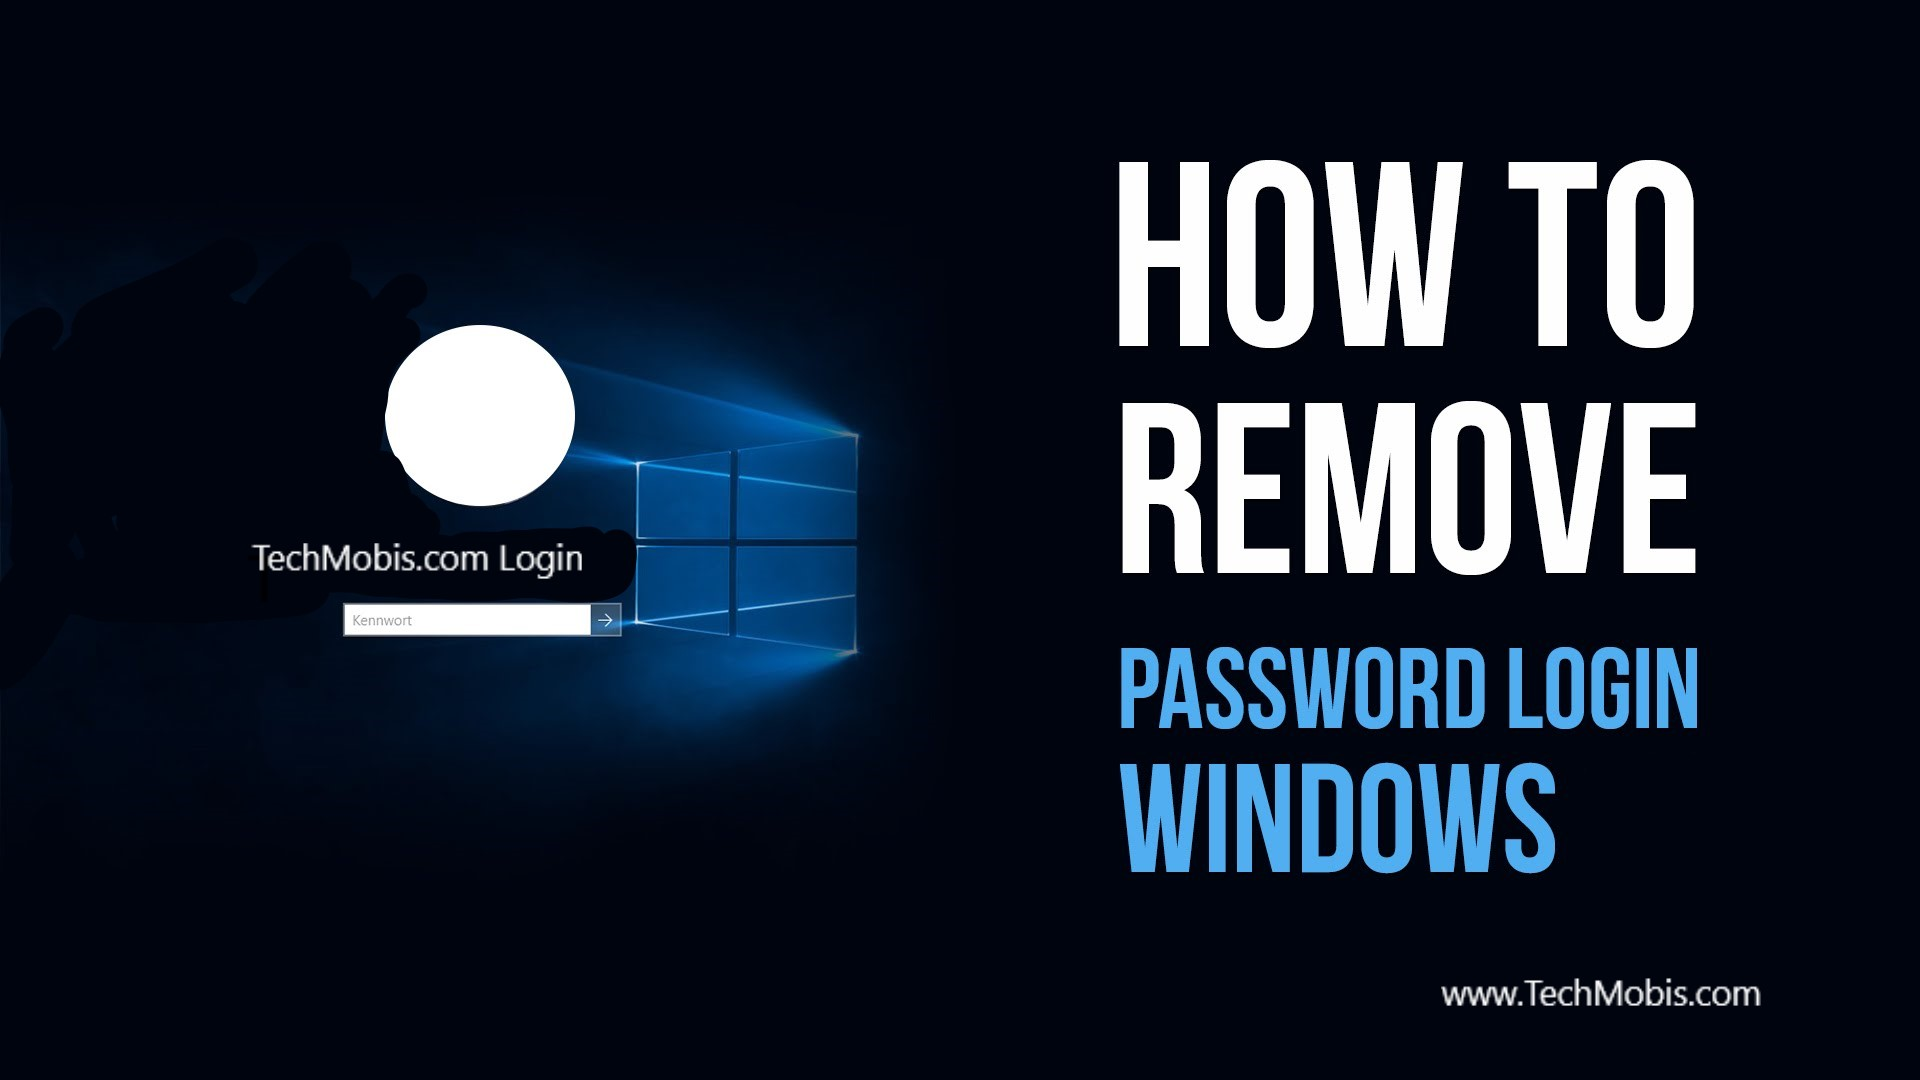 How to Bypass Windows 7 / 8 / 10 Login or Admin Password